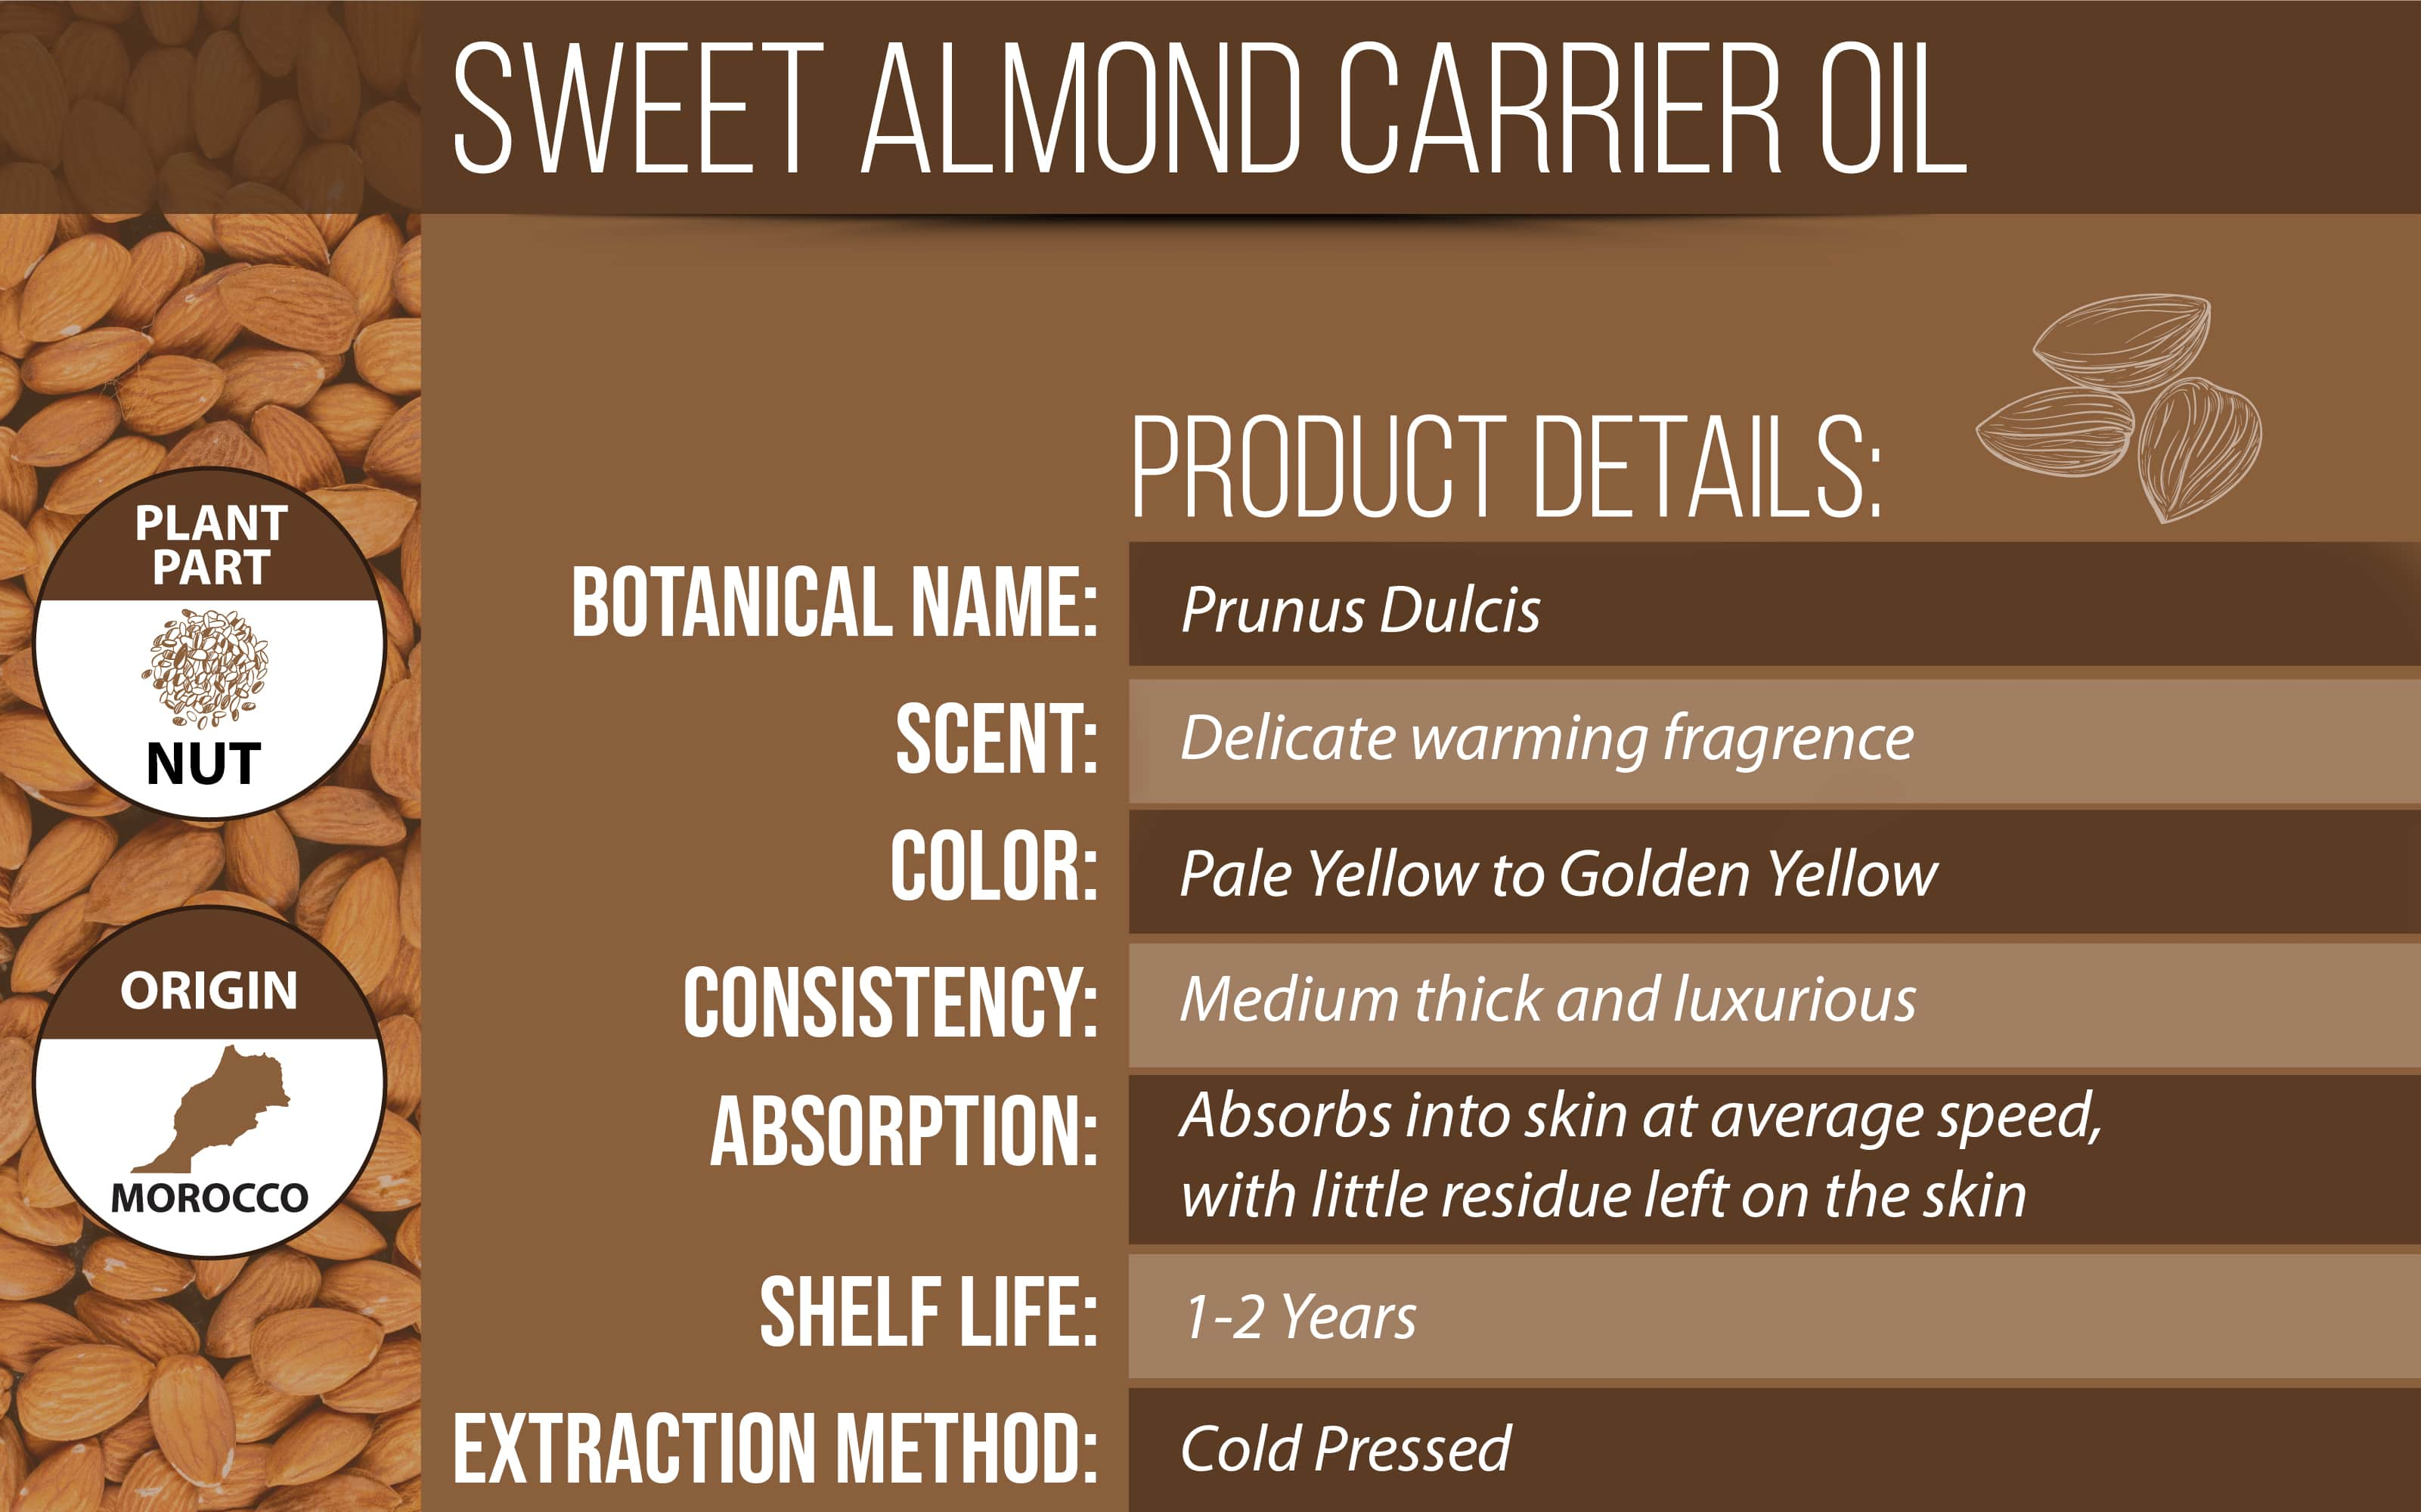 Sweet Almond Oil Product Details